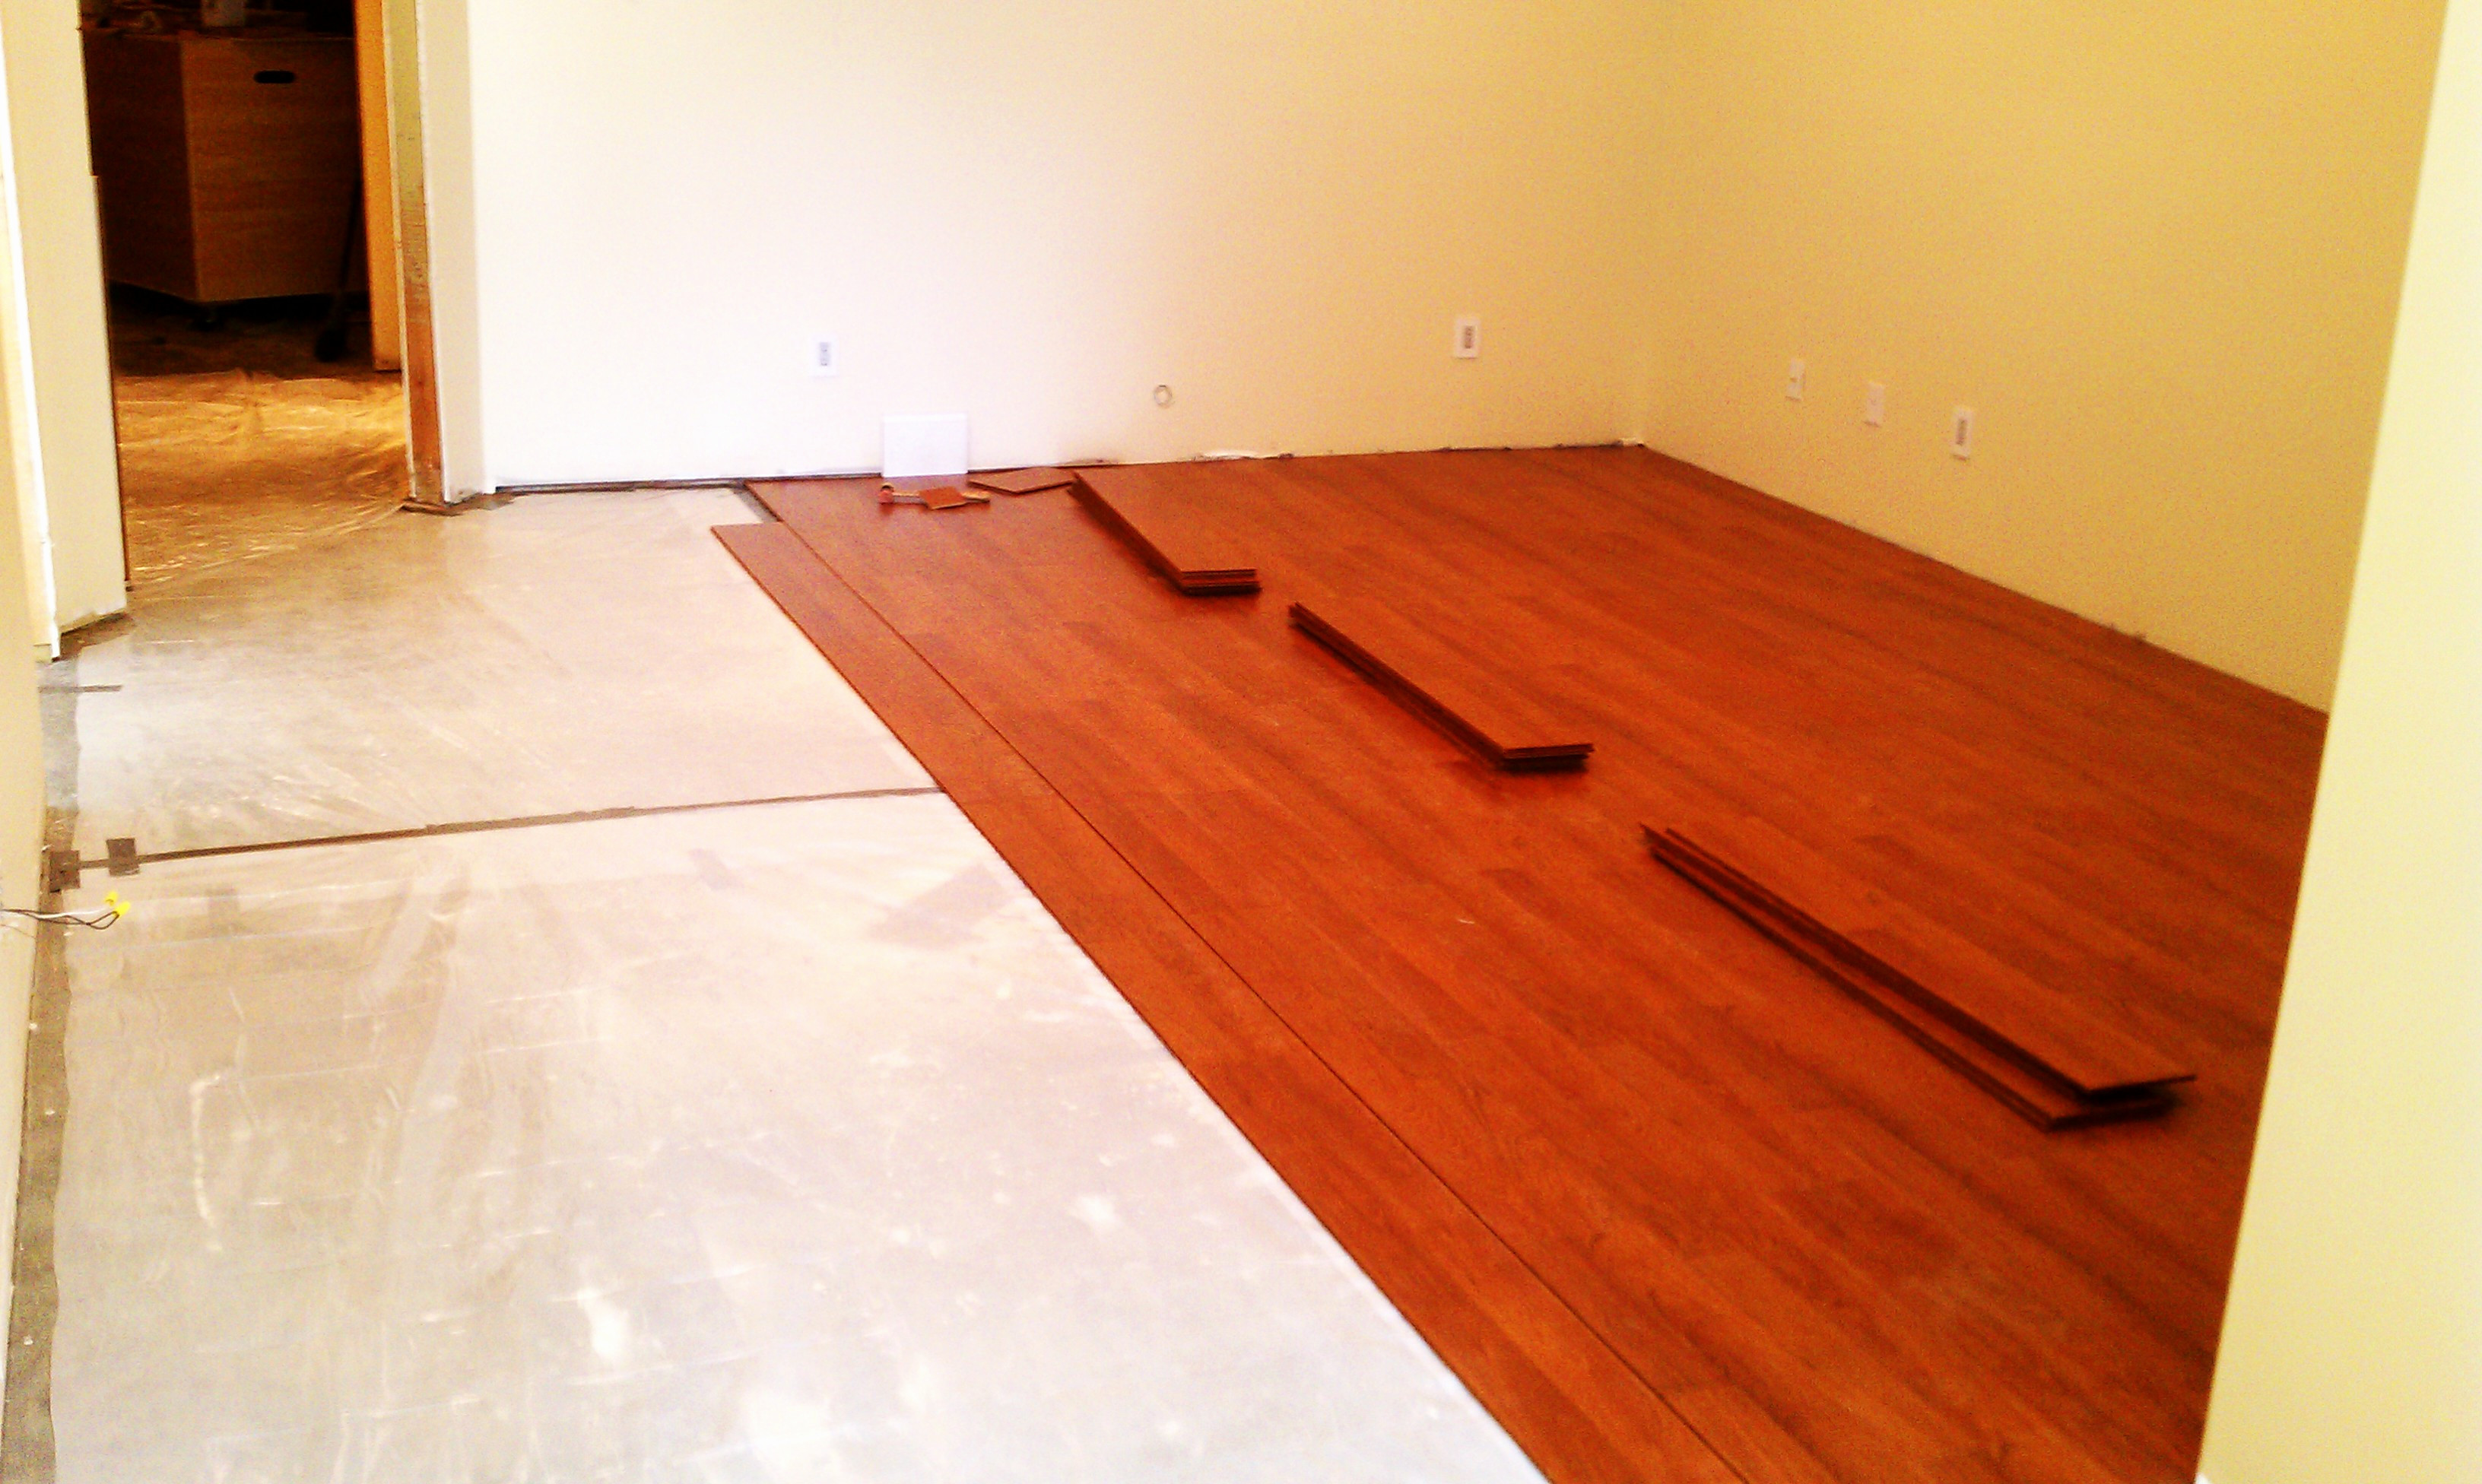 typical cost to refinish hardwood floors of cost to refinish hardwood floors how to sand hardwood floors floor pertaining to cost to refinish hardwood floors 50 new average cost to refinish hardwood floors 50 s